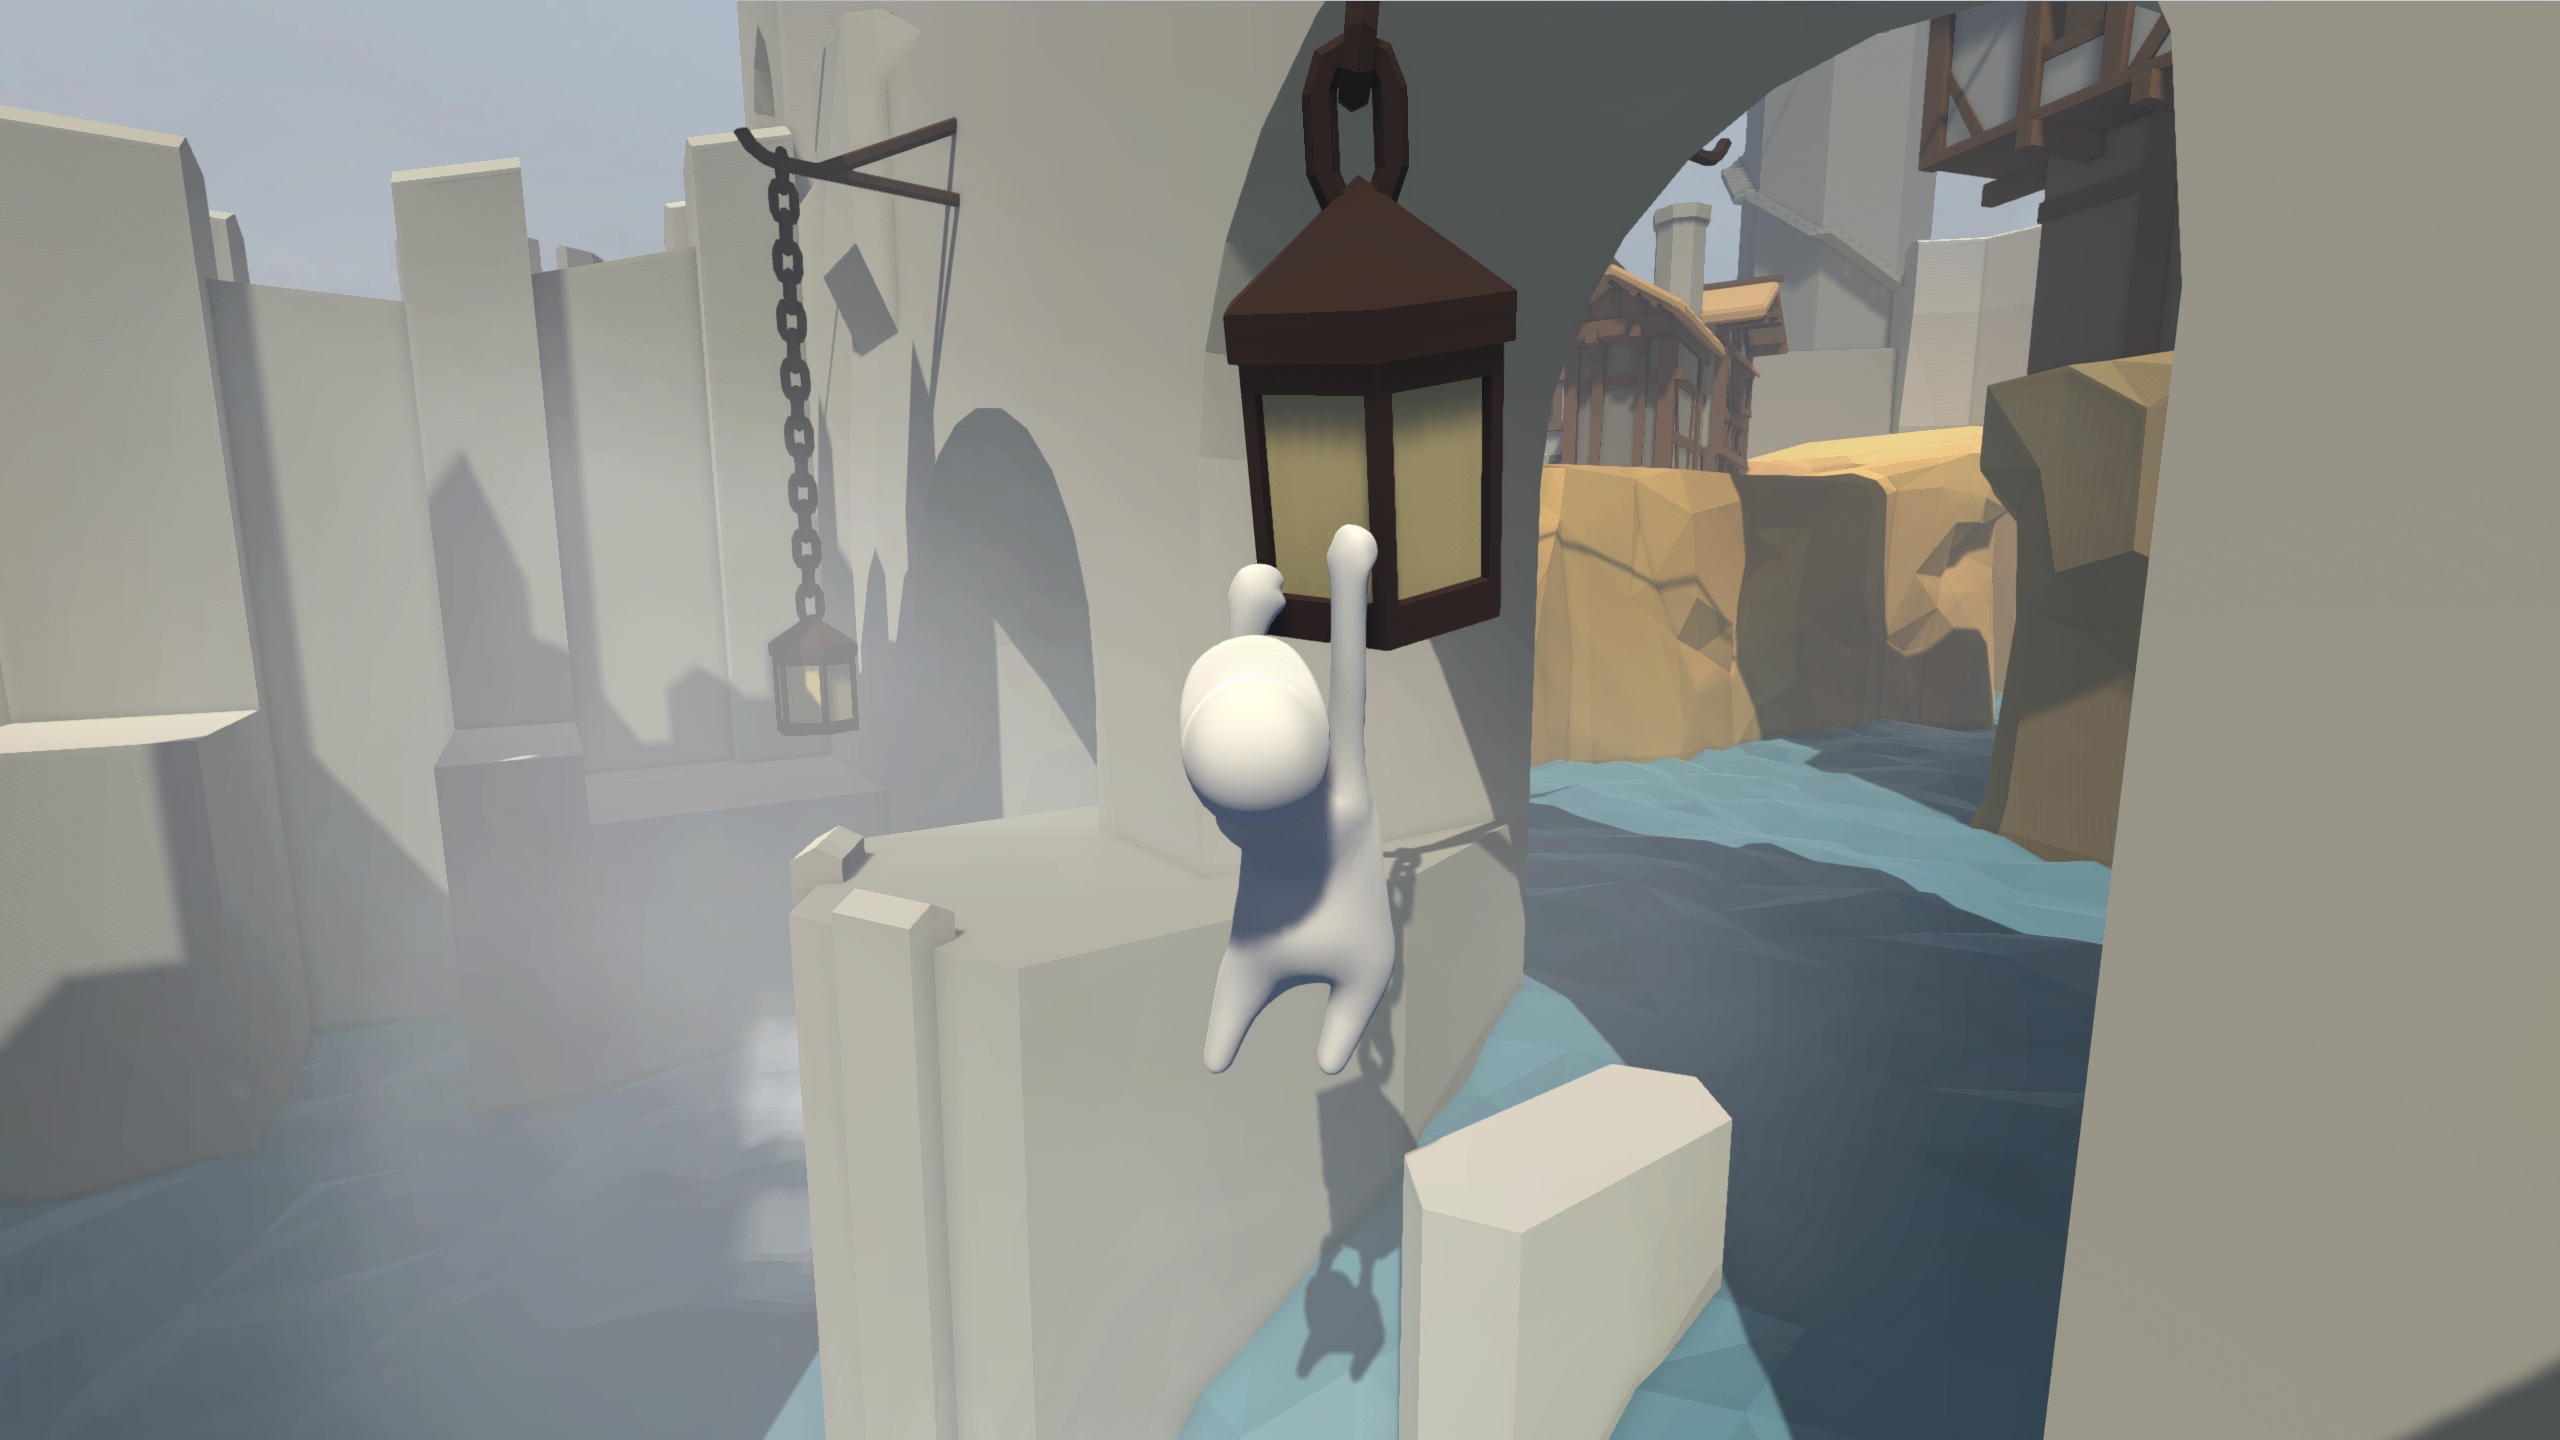 Goof around with your friends in Human: Fall Flat, a physics-based puzzle game.